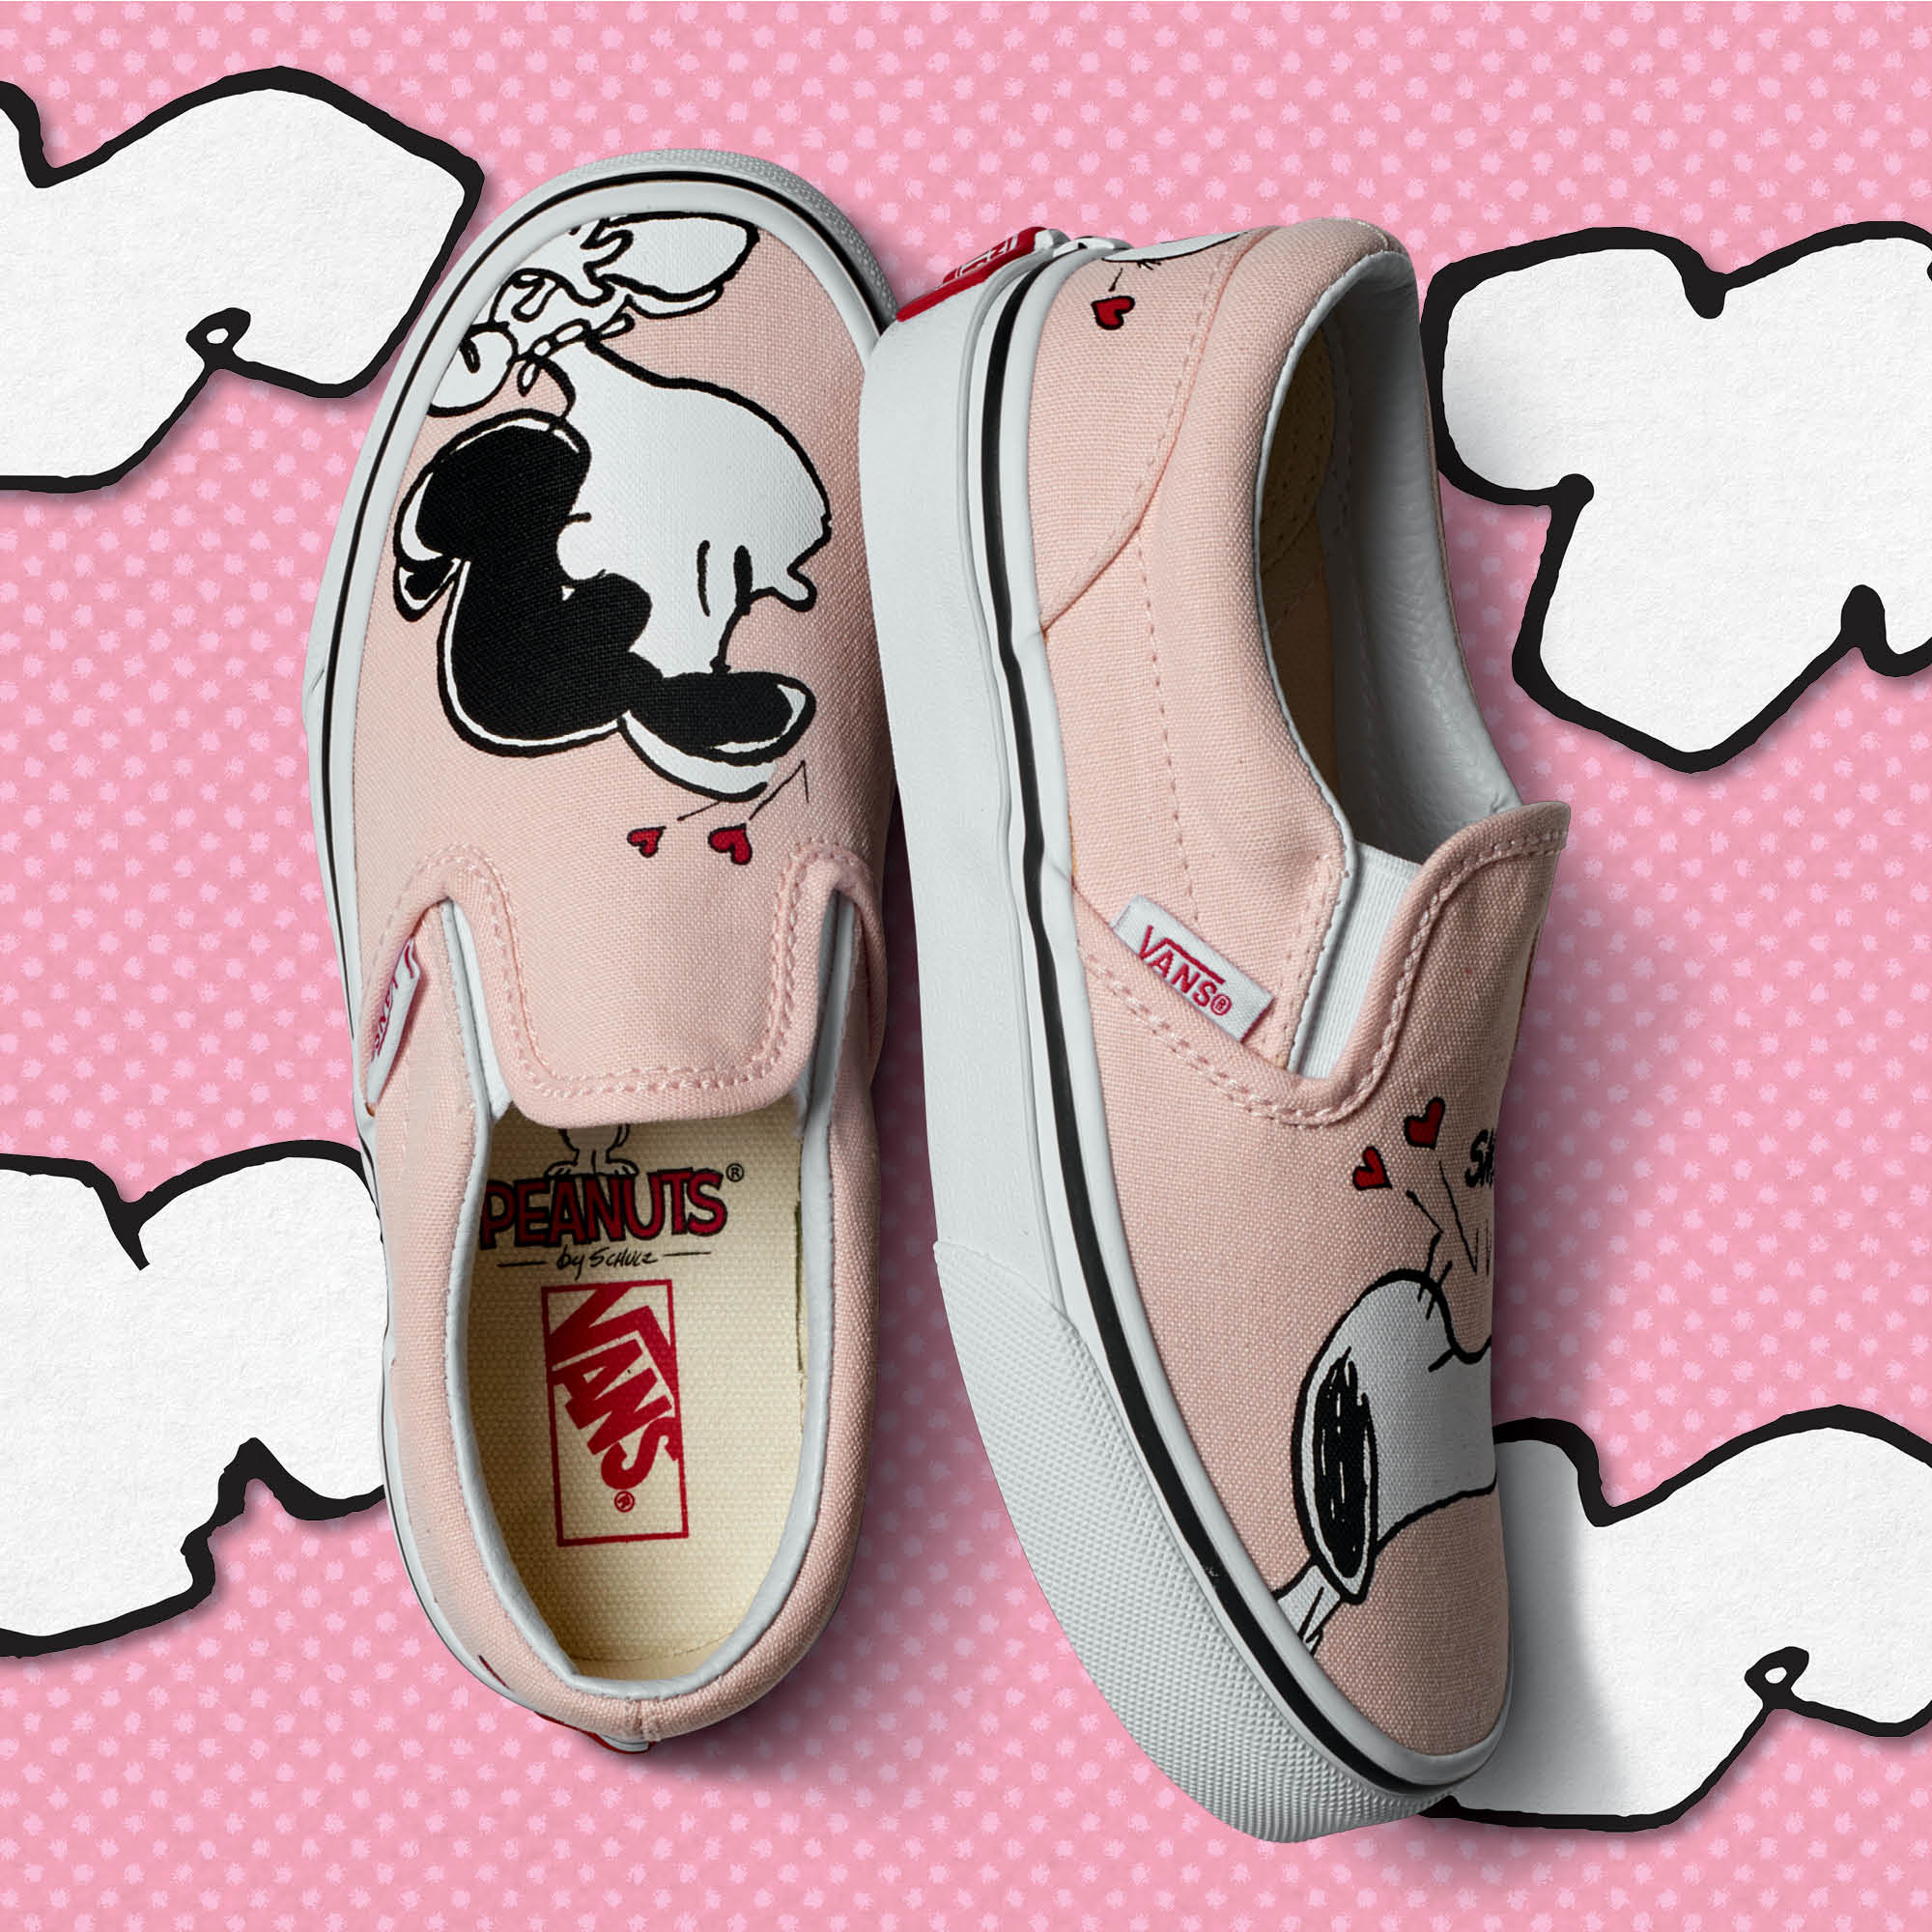 f2e822010459c2 Show us how you style the Vans X Peanuts collection by tagging us on social  media   littleburgundyshoes.  vansXpeanuts